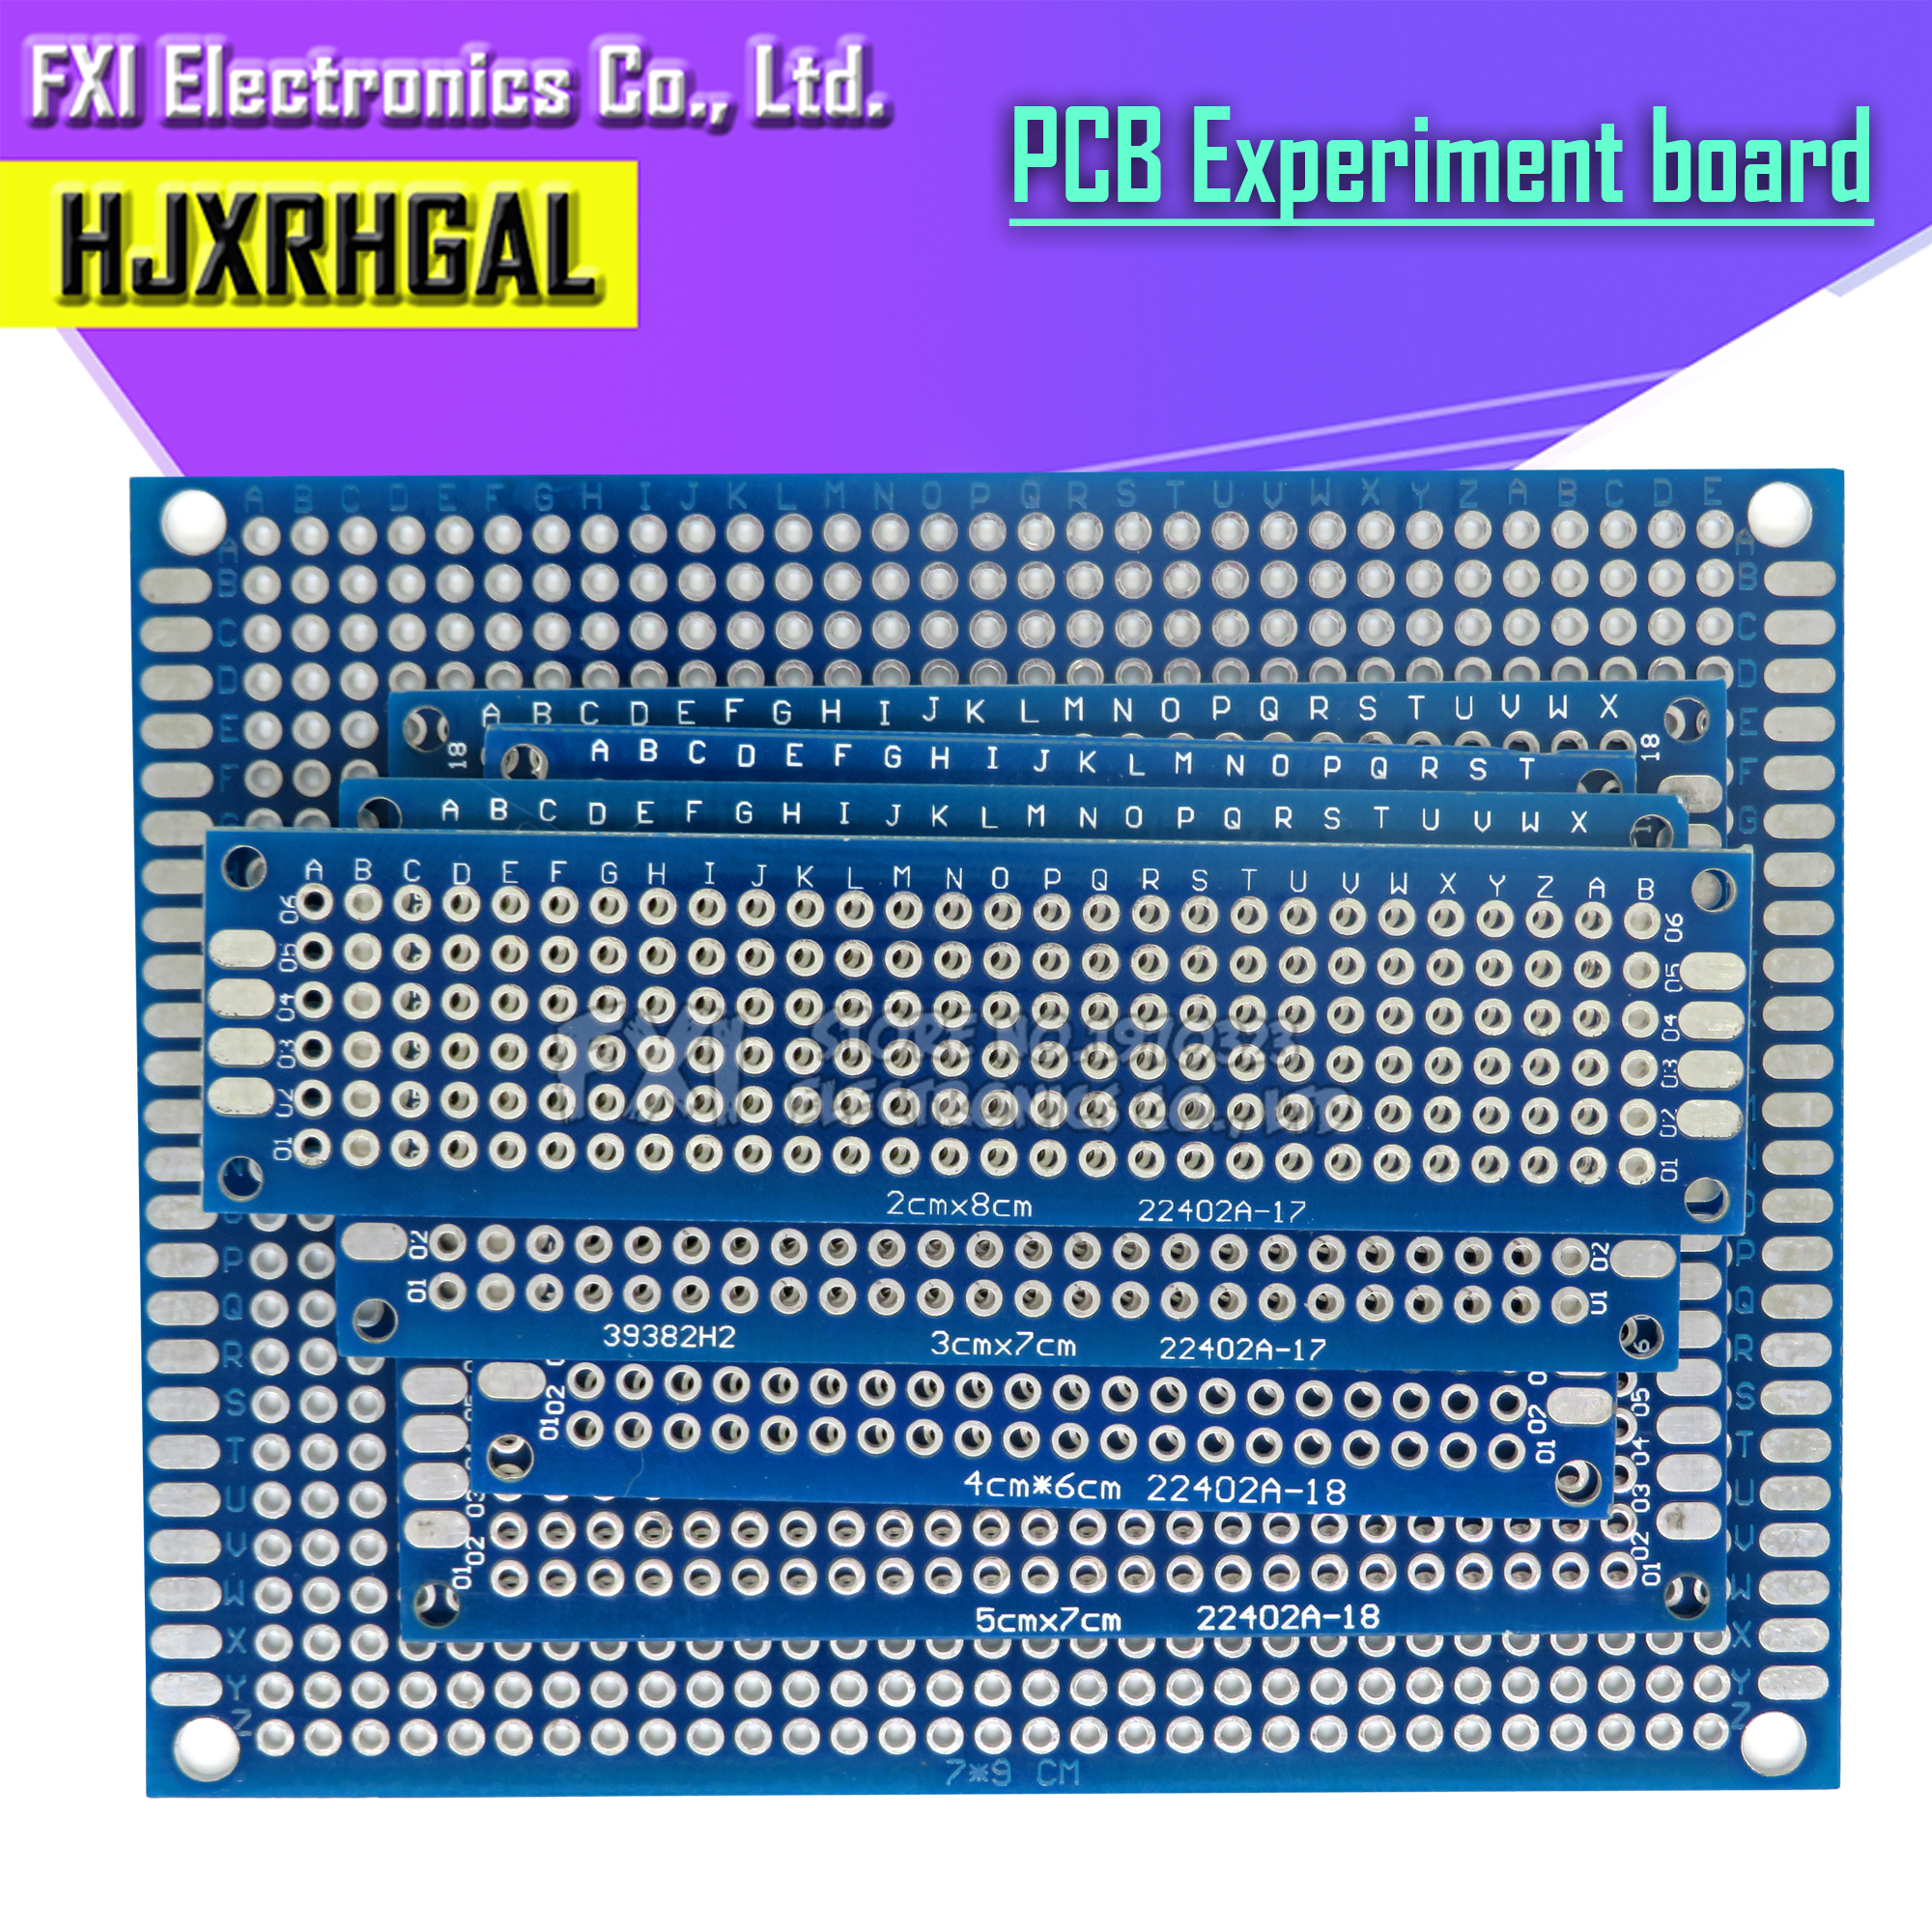 1pcs 2x8cm 3x7cm 4x6cm 5x7cm 7x9cm Double Side PCB Board 4*6cm Universal Printed Circuit Board For Arduino Experimental